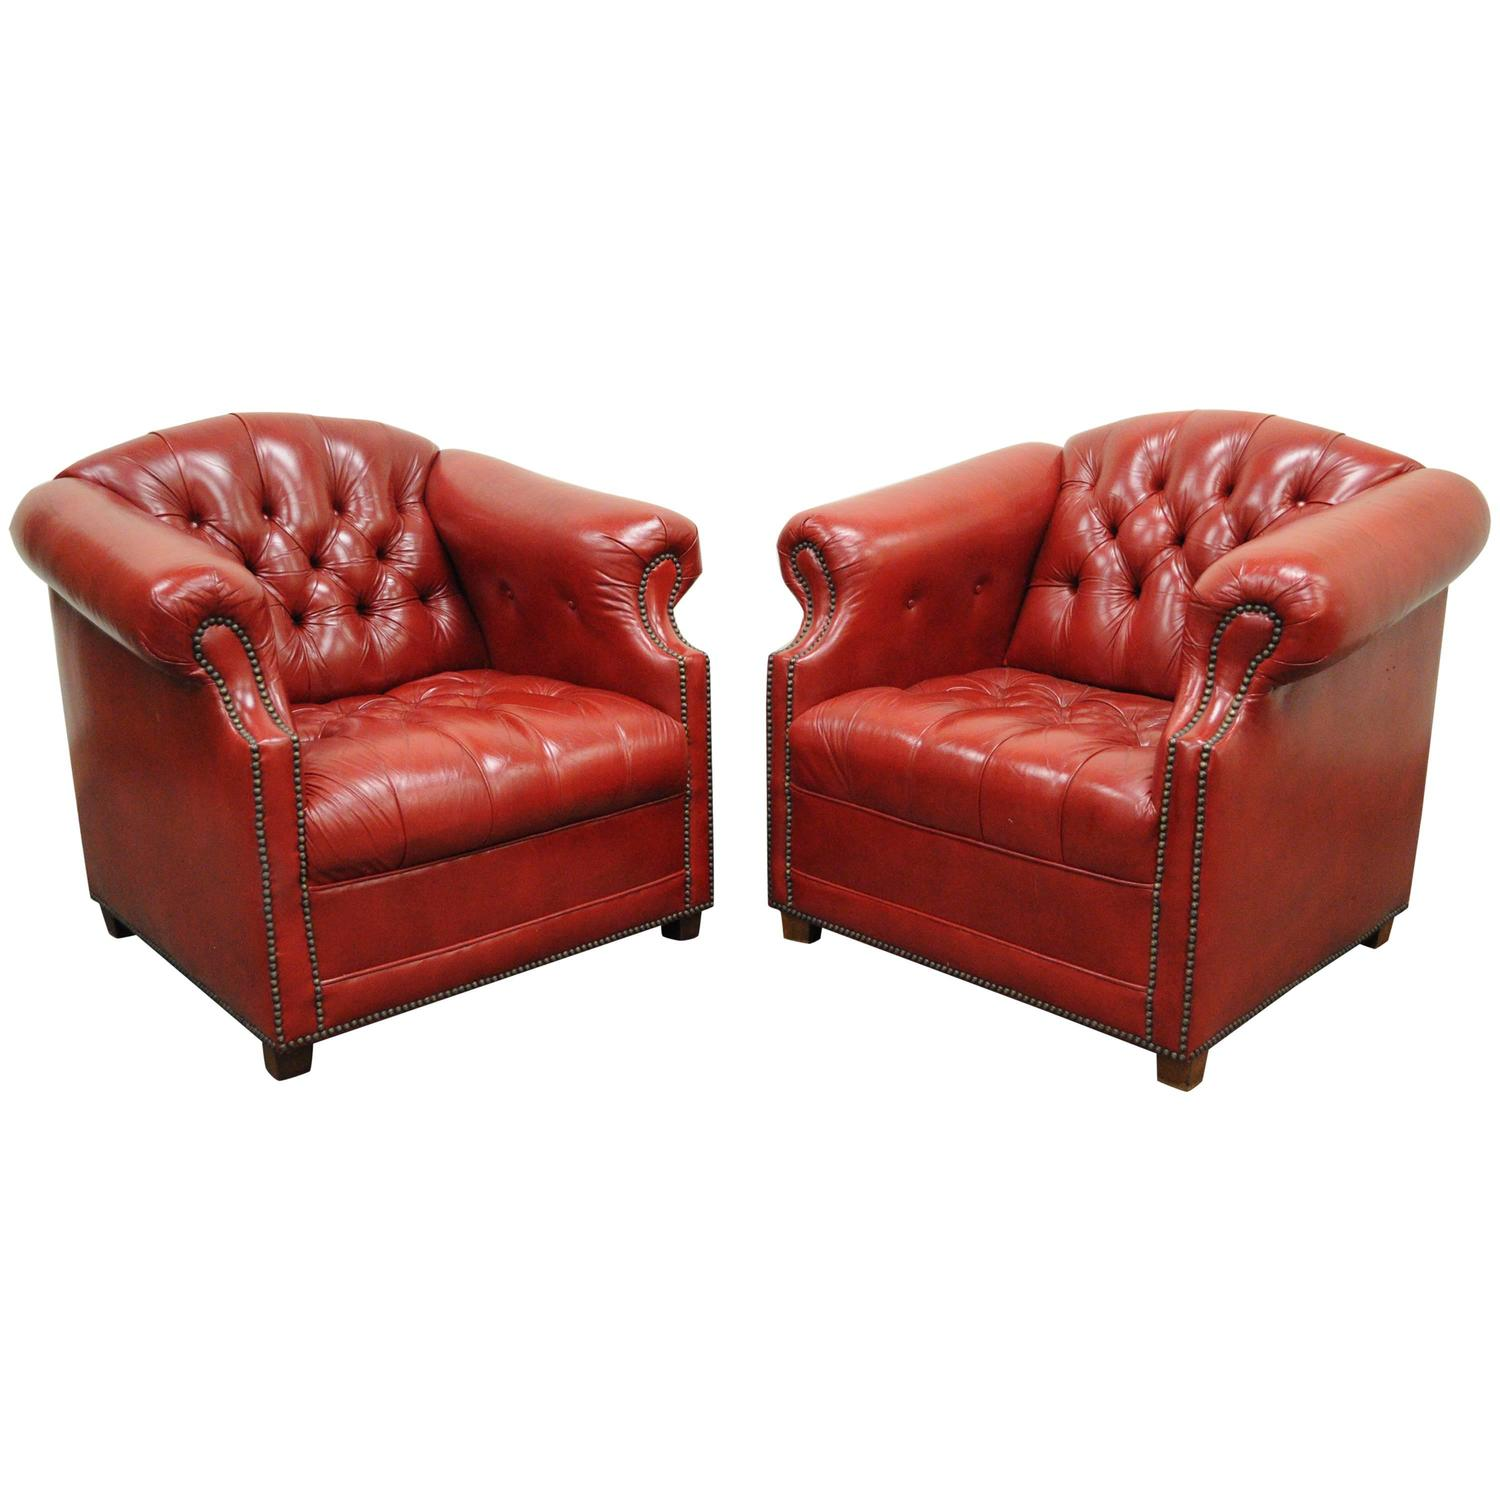 Pair of Red Leather English Chesterfield Style Button Tufted Club